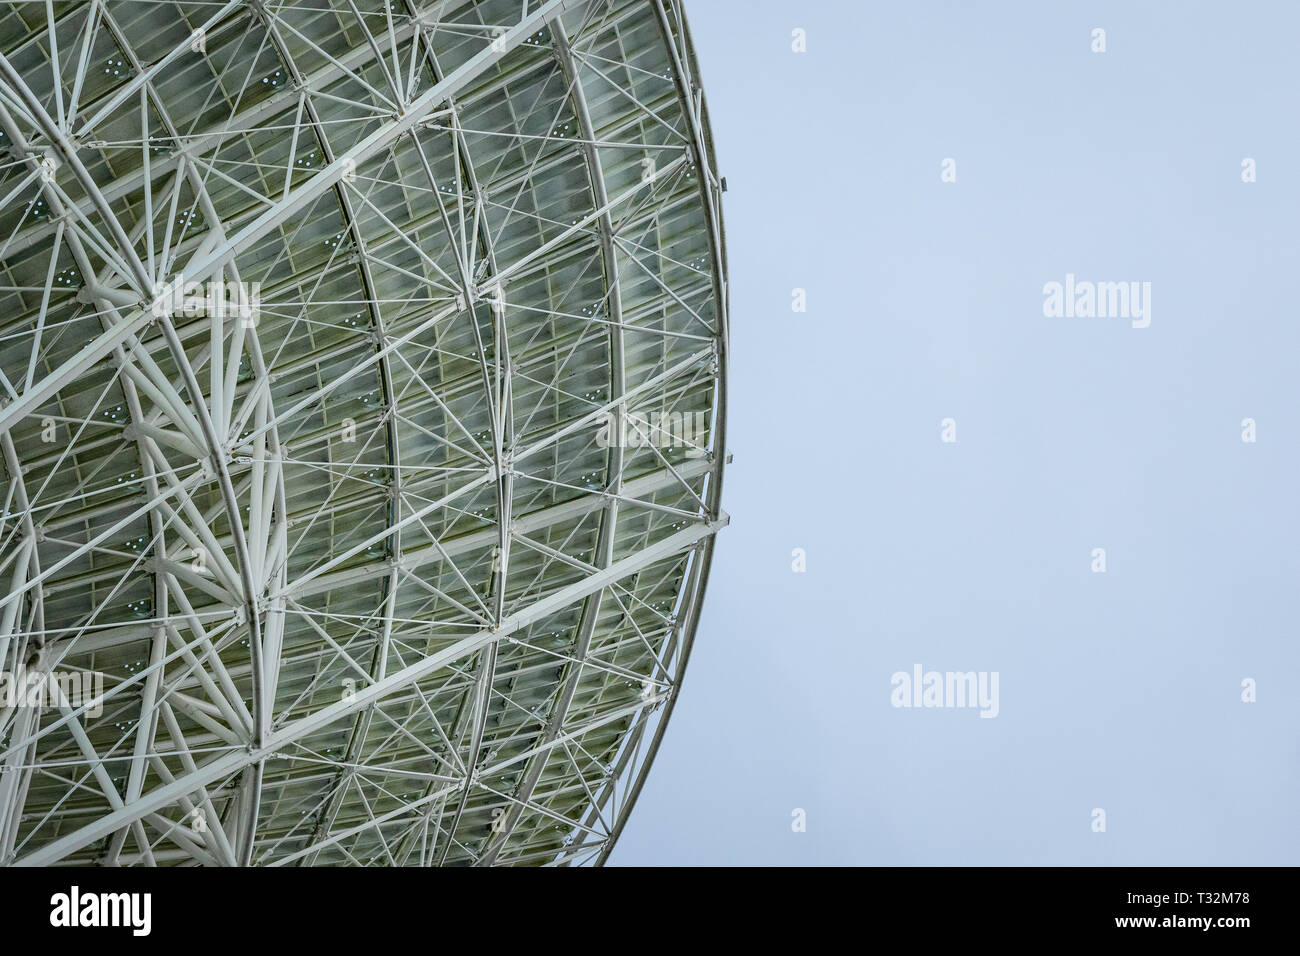 Huge white radio satellite dish isolated against a bright blue sky. - Stock Image